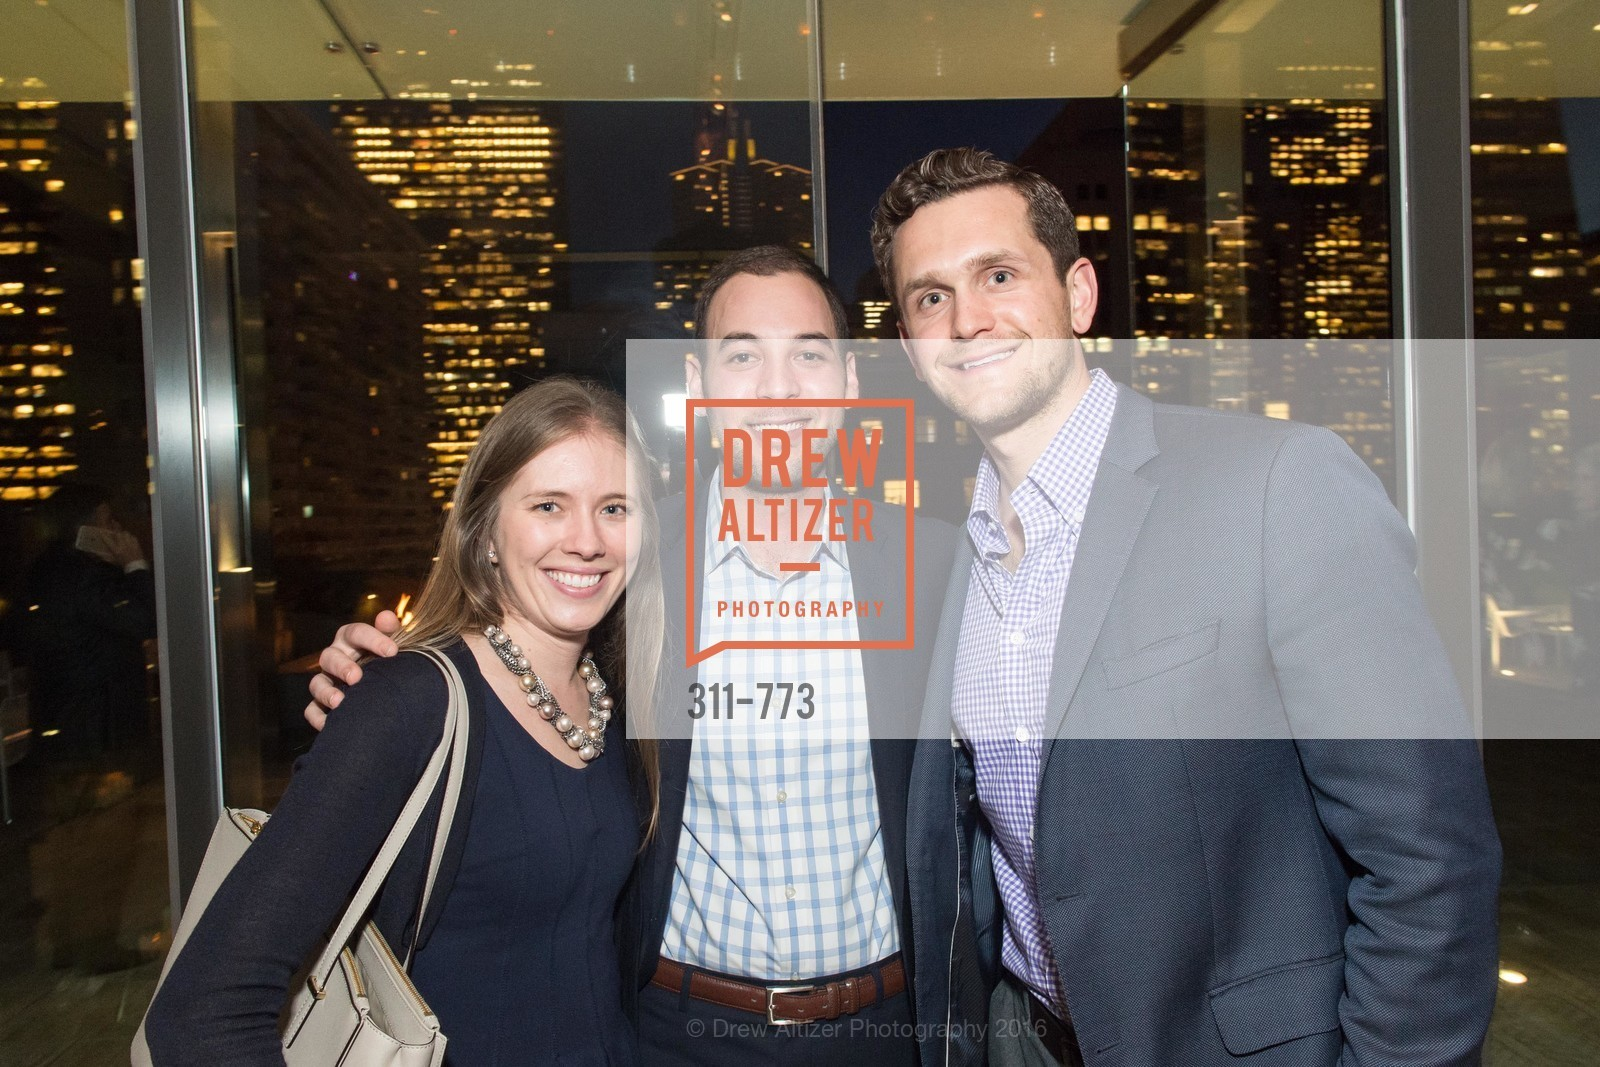 Tori Patton, Daniel DerVartanian, Neill Bassi, Sotheby's International Realty's Celebrates the New Year, The Battery, Penthouse. 717 Battery St, January 27th, 2016,Drew Altizer, Drew Altizer Photography, full-service agency, private events, San Francisco photographer, photographer california